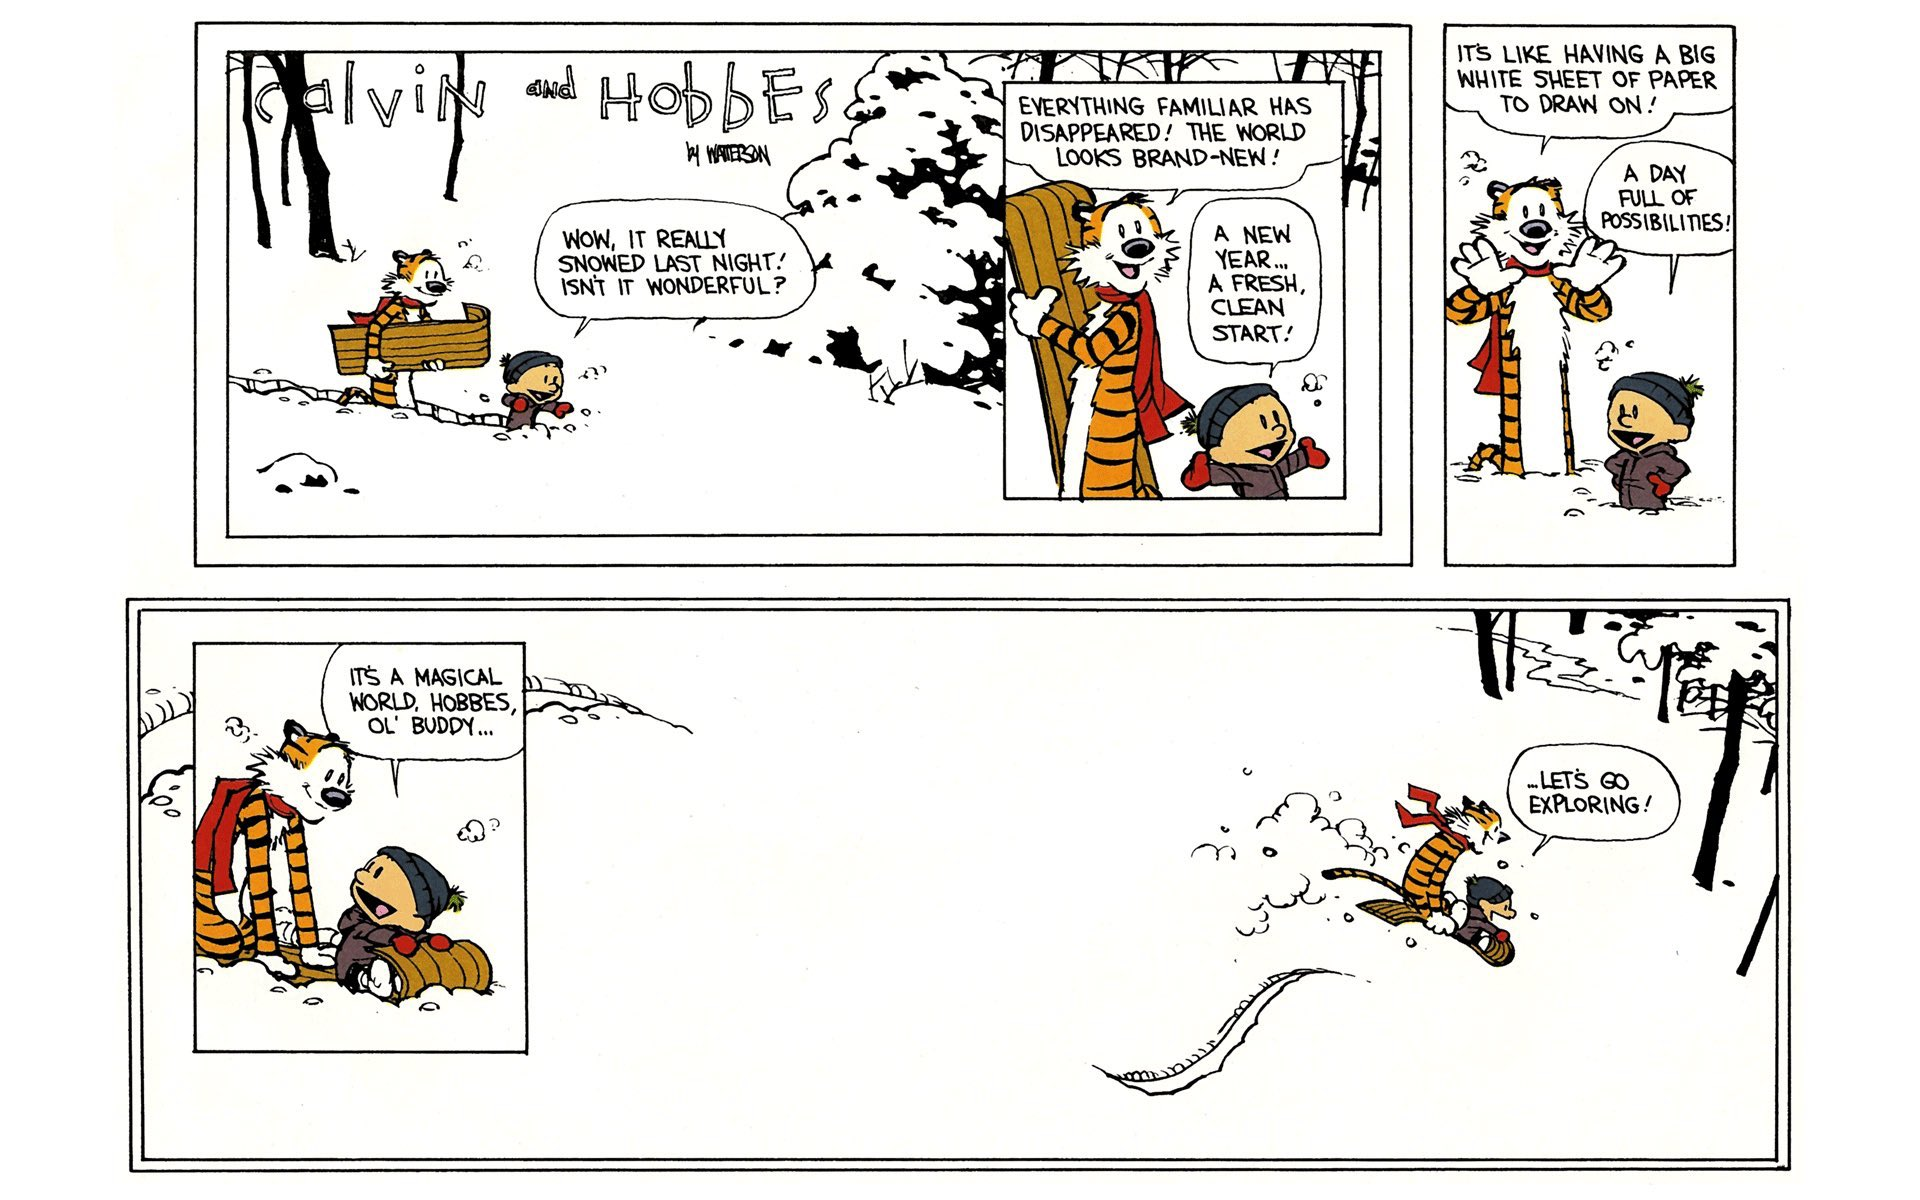 On December 31, 1995, Bill Watterson published the final 'Calvin & Hobbes' comic strip. https://t.co/xI9wuhywbI